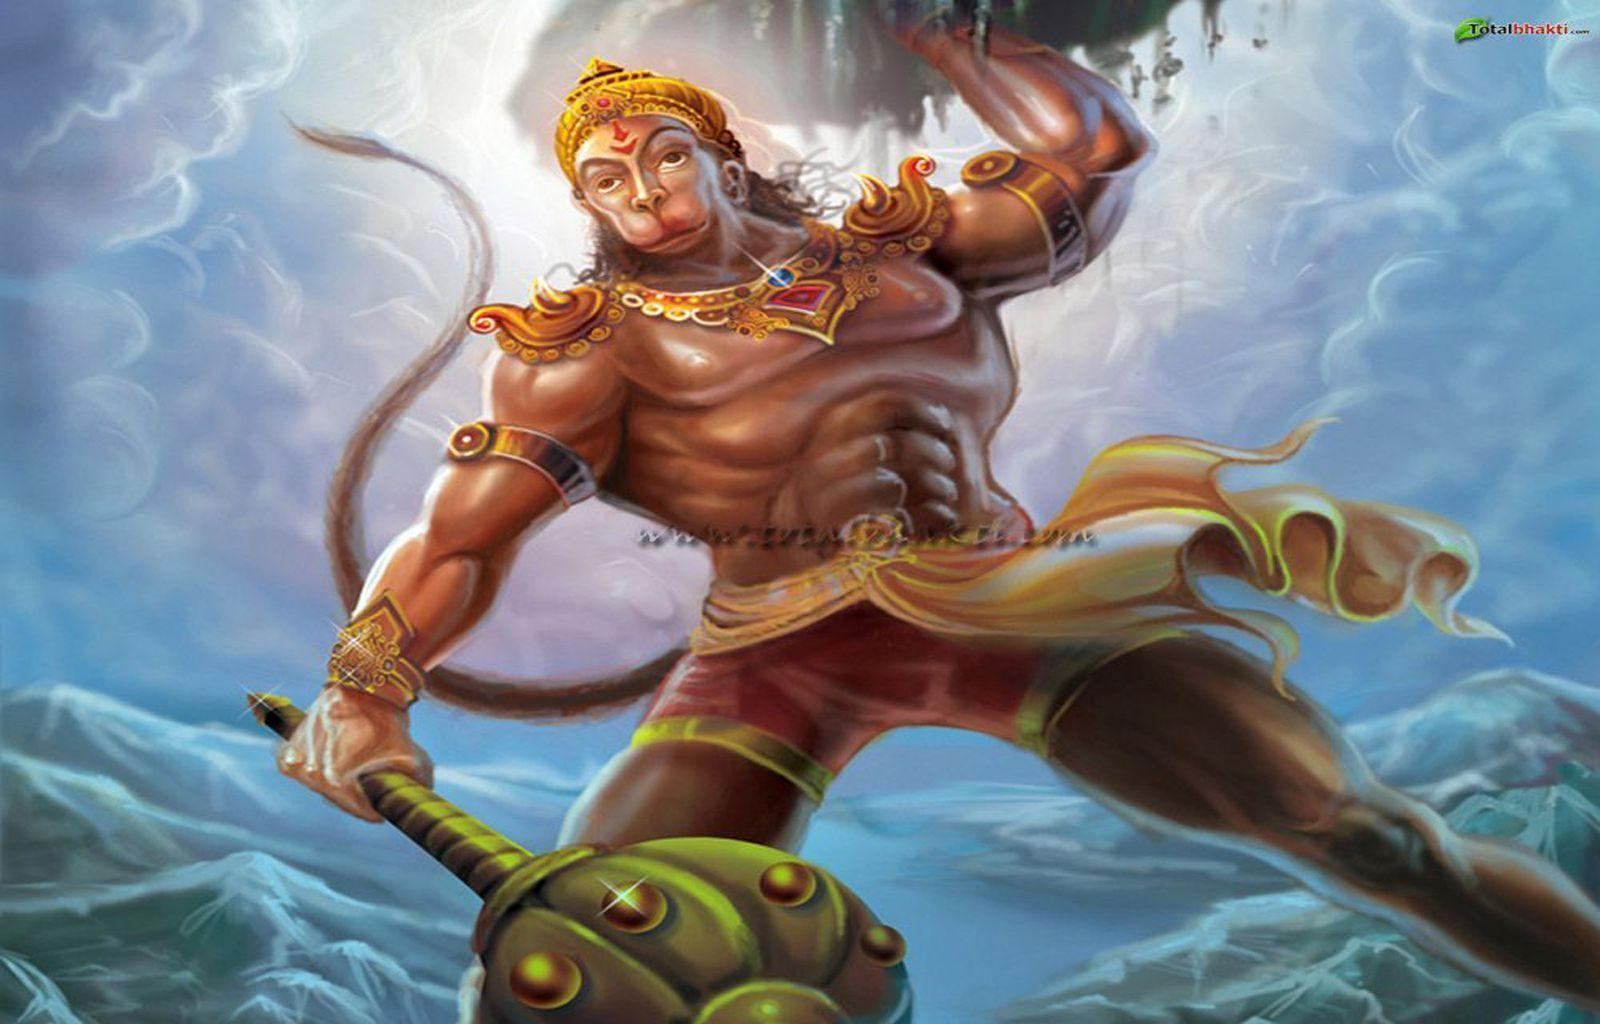 hanuman wallpaper, Hindu wallpaper, Lord Hanuman lifting mountain